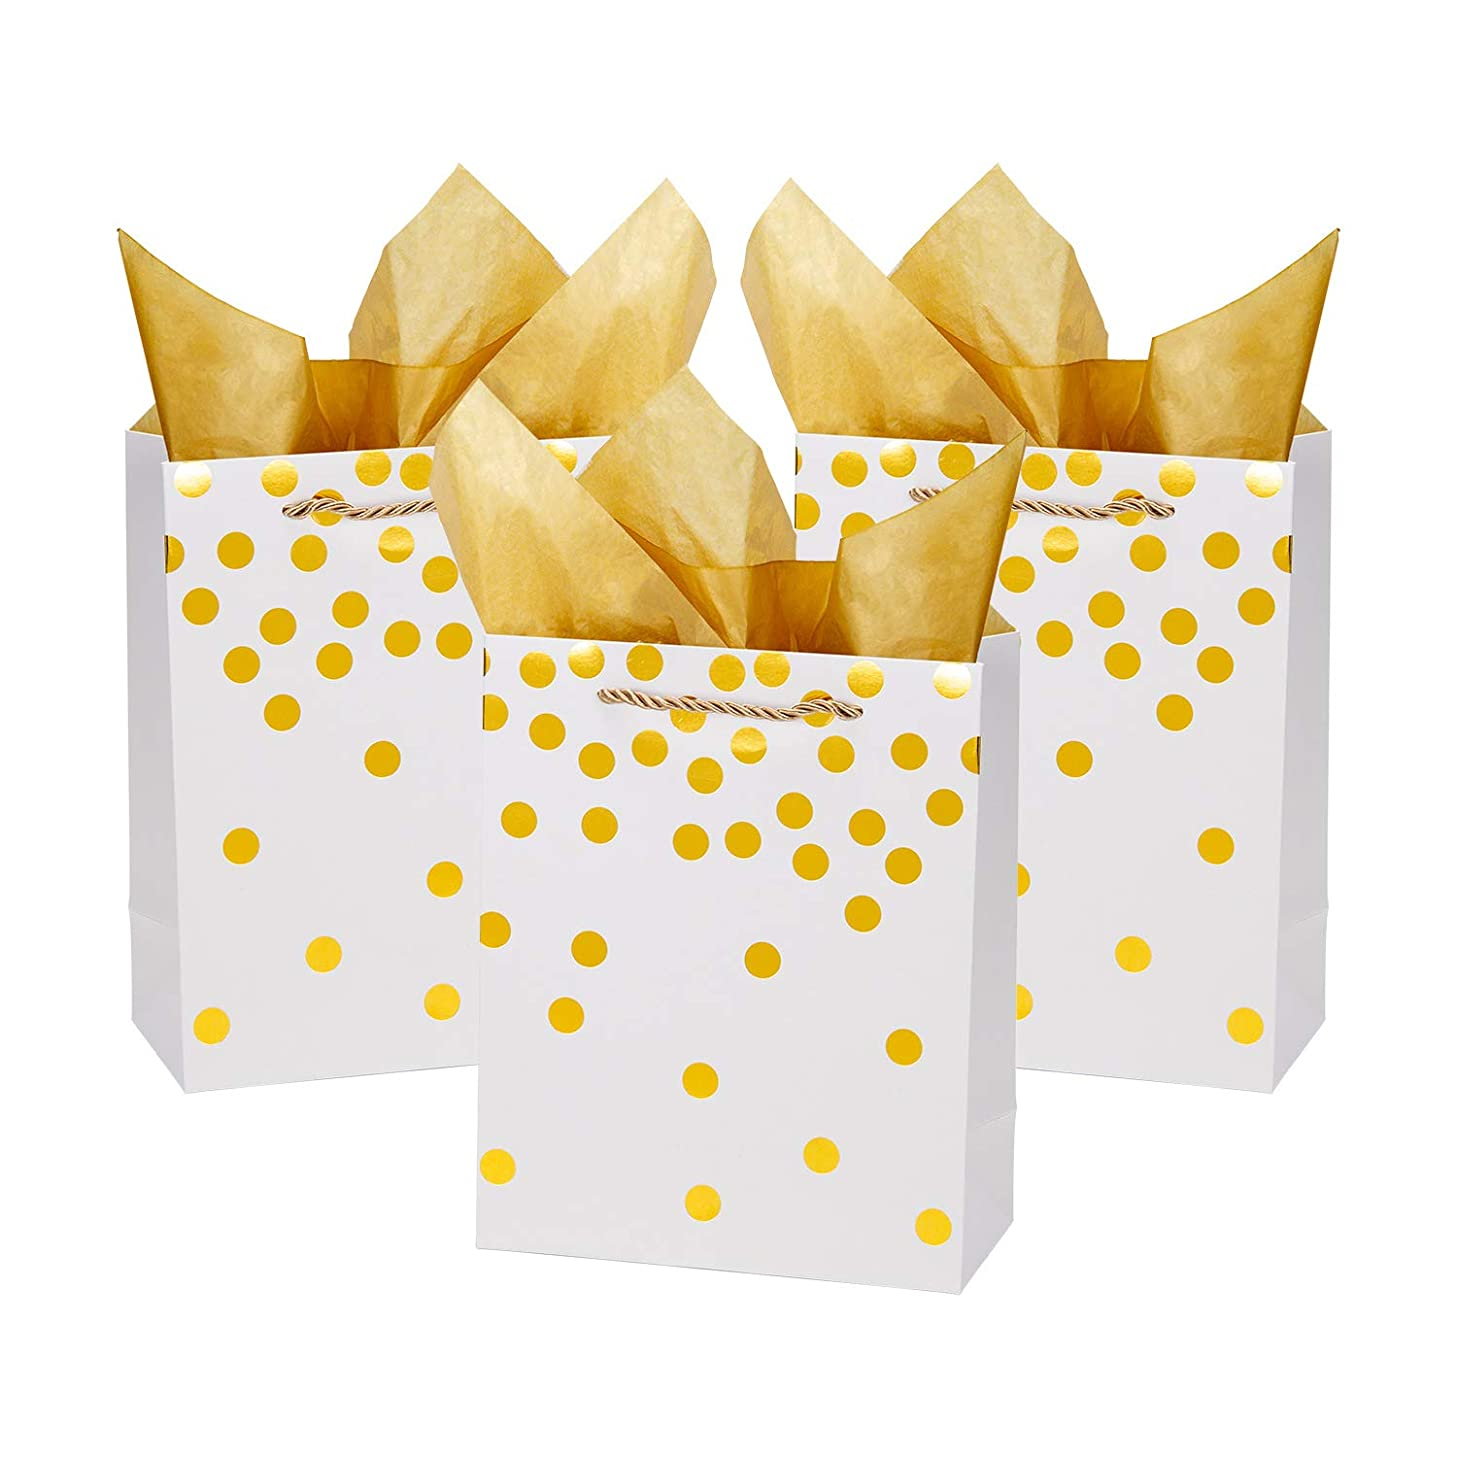 Loveinside Dots Foil Gift Bags -Gold Foil White Paper Gift Bag with Tissue Paper for Wedding,Birthday Present-12Pack -8